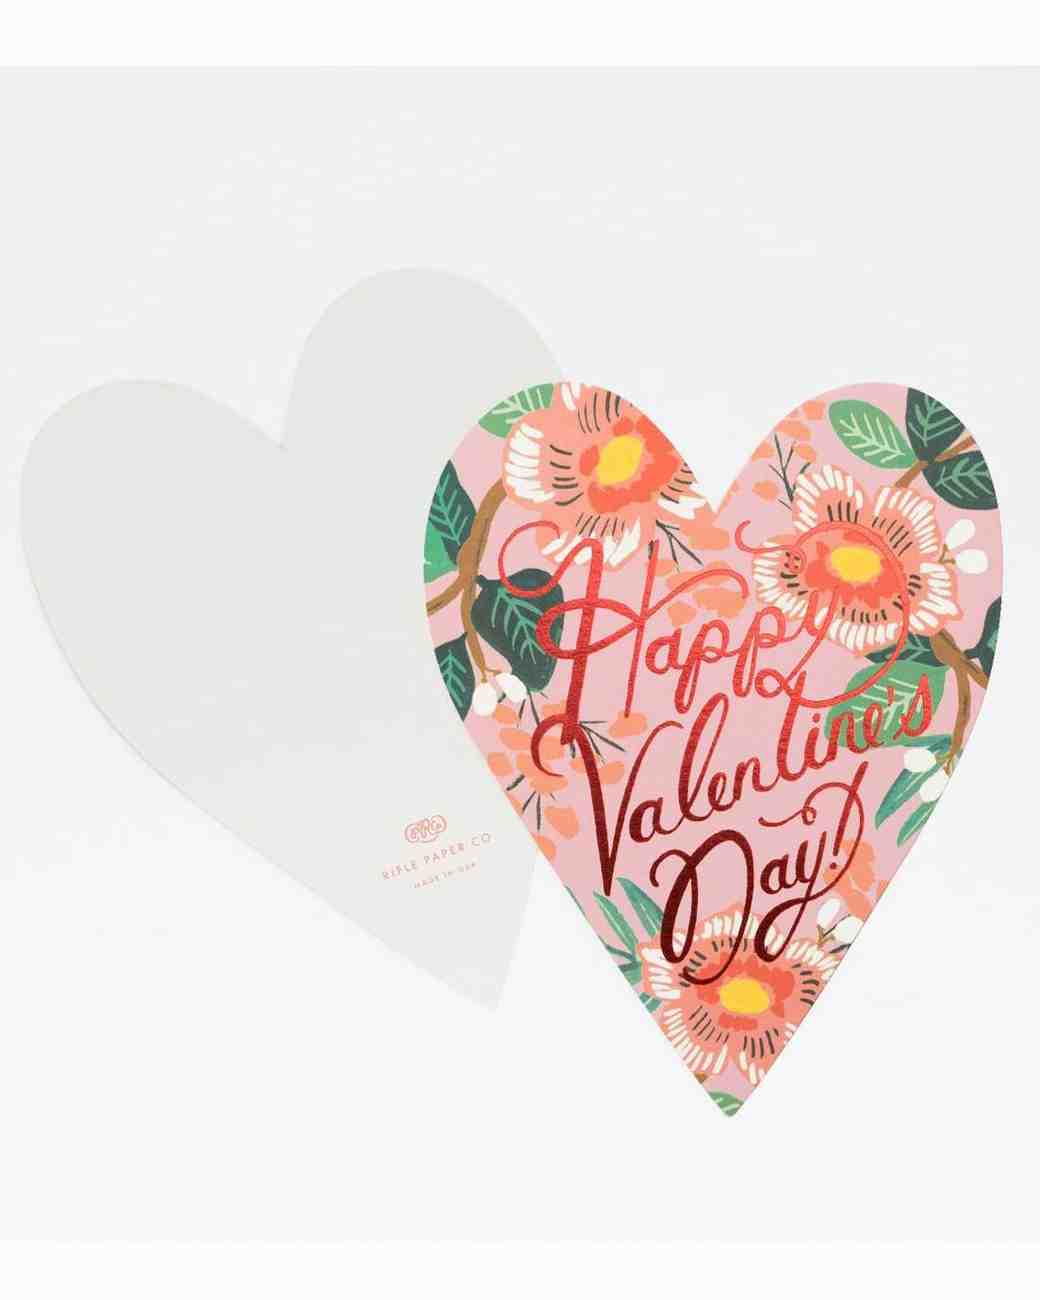 vday-cards-we-love-rifle-paper-company-flowery-heart-card-0216.jpg